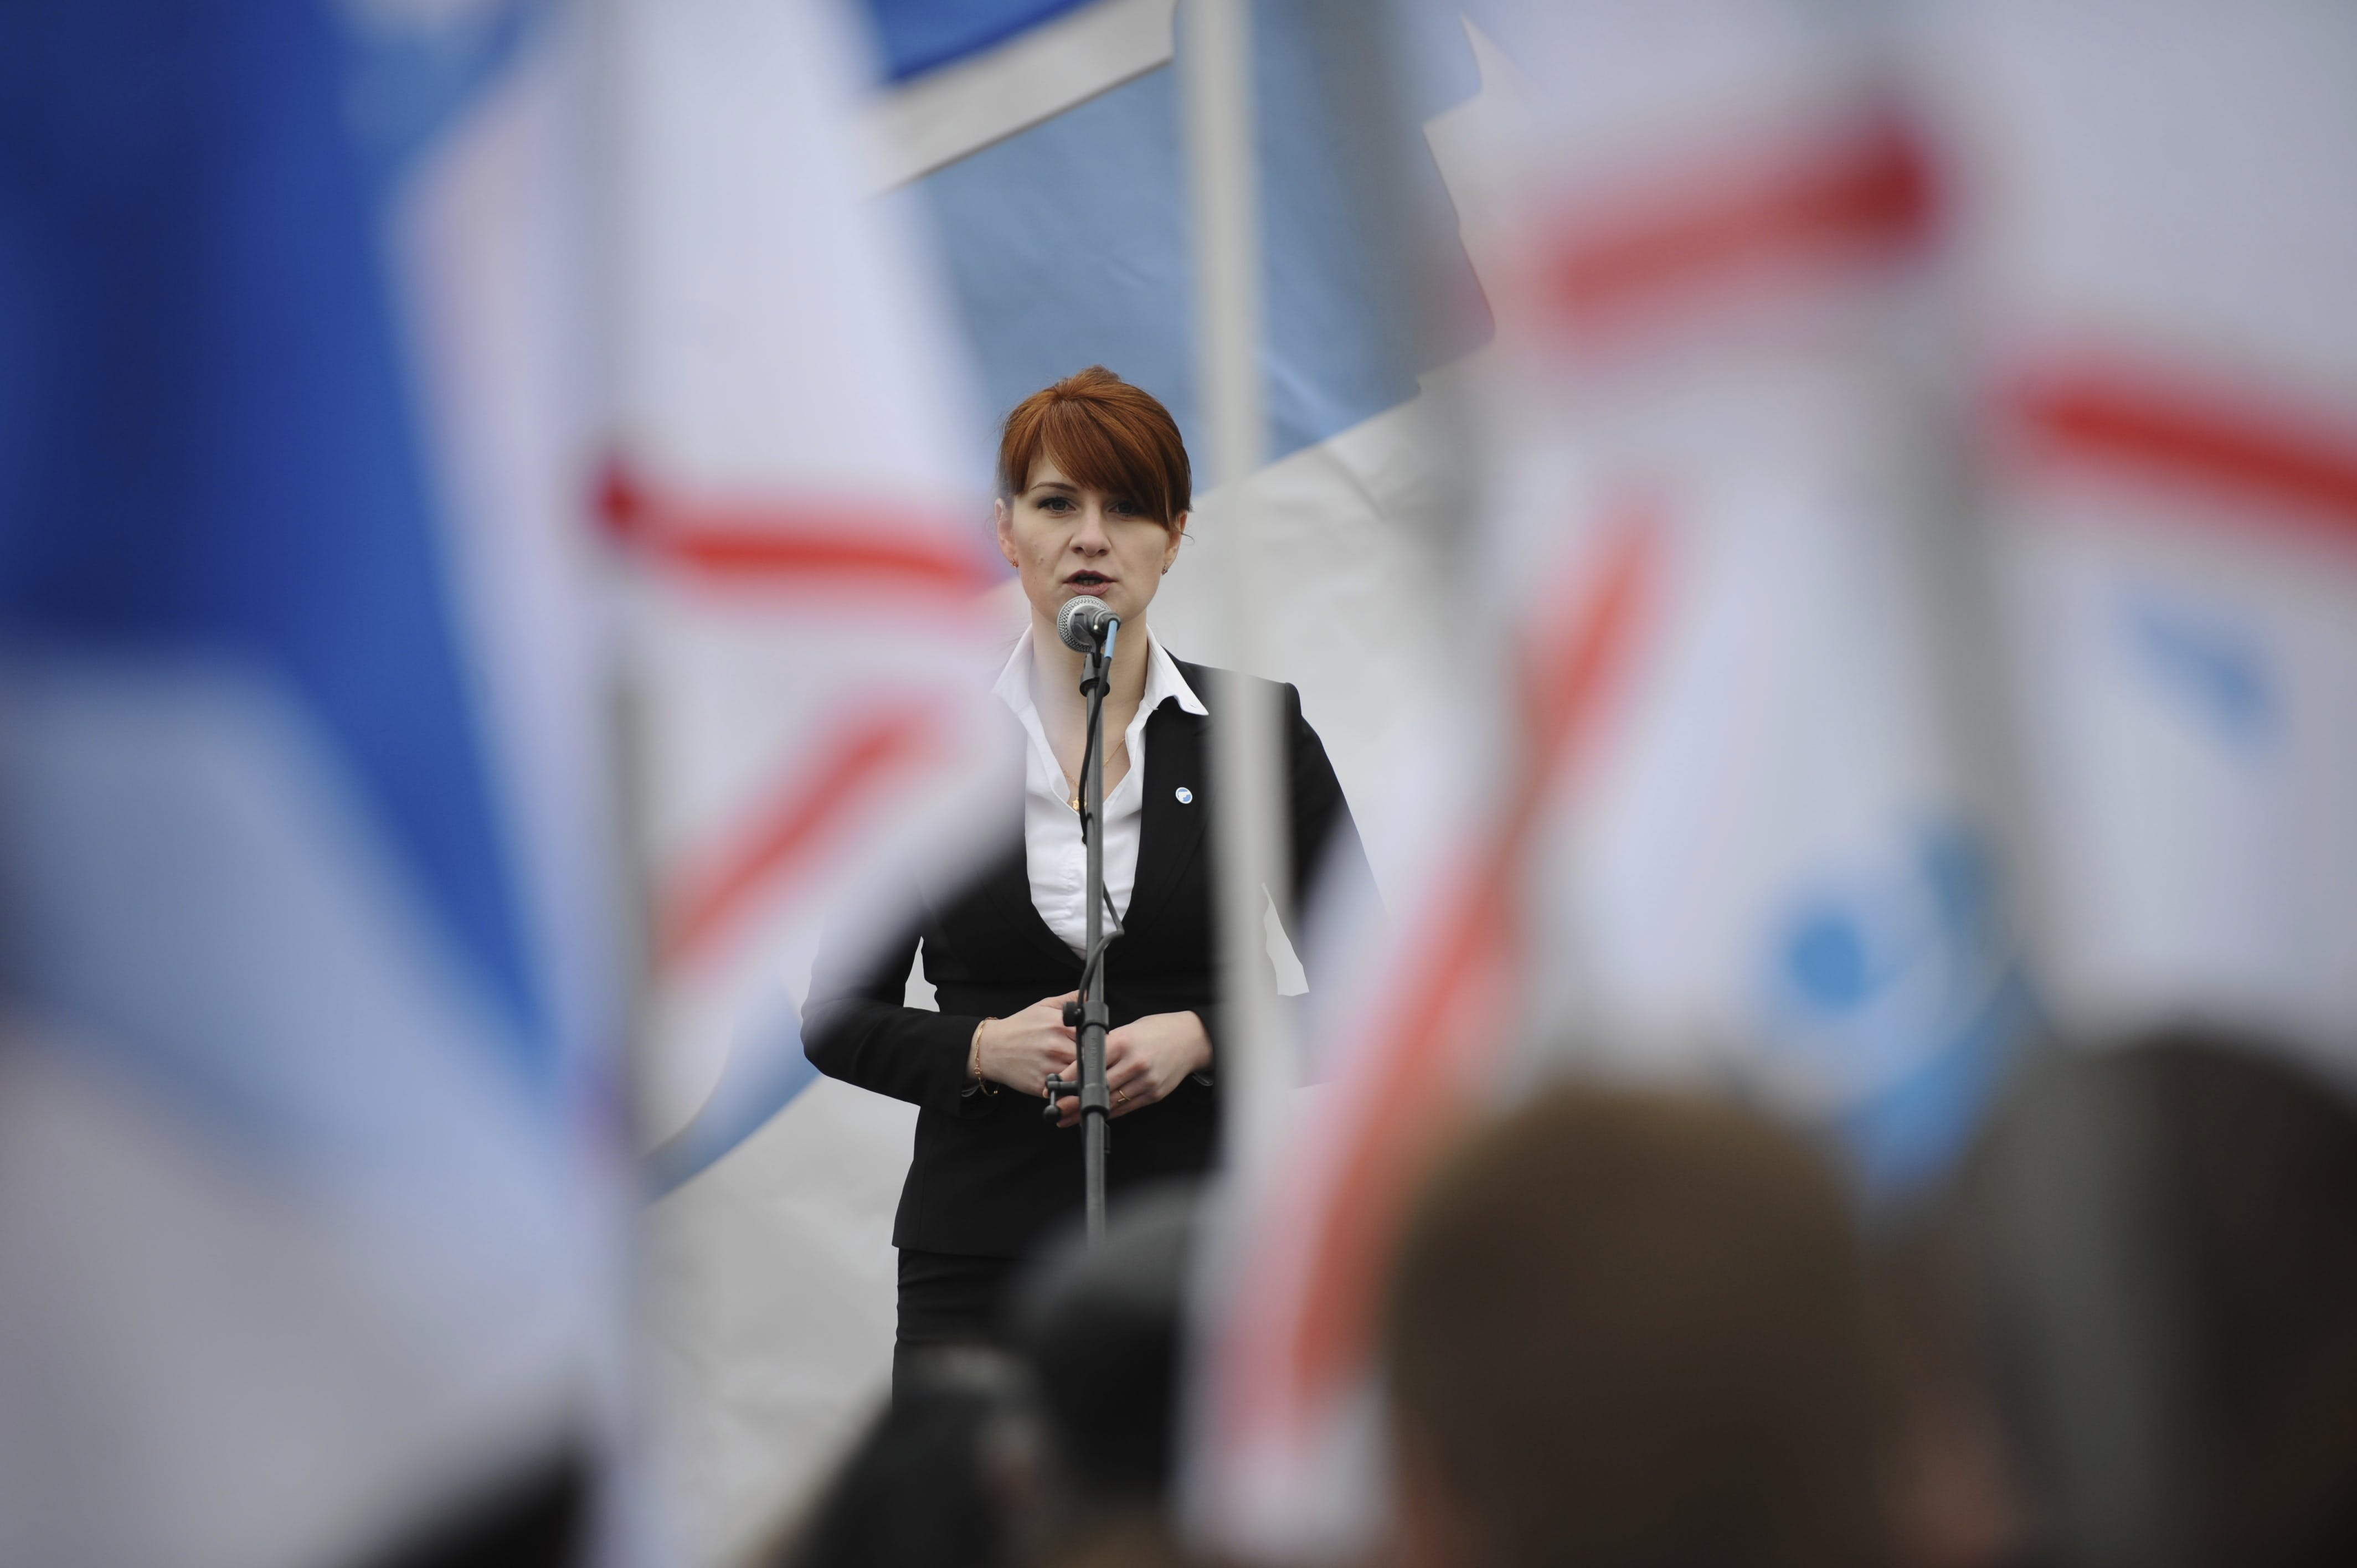 The Butina Indictment Isn't About the Sex Life of an Accused Spy. It's About Following Russian Money in U.S. Politics.